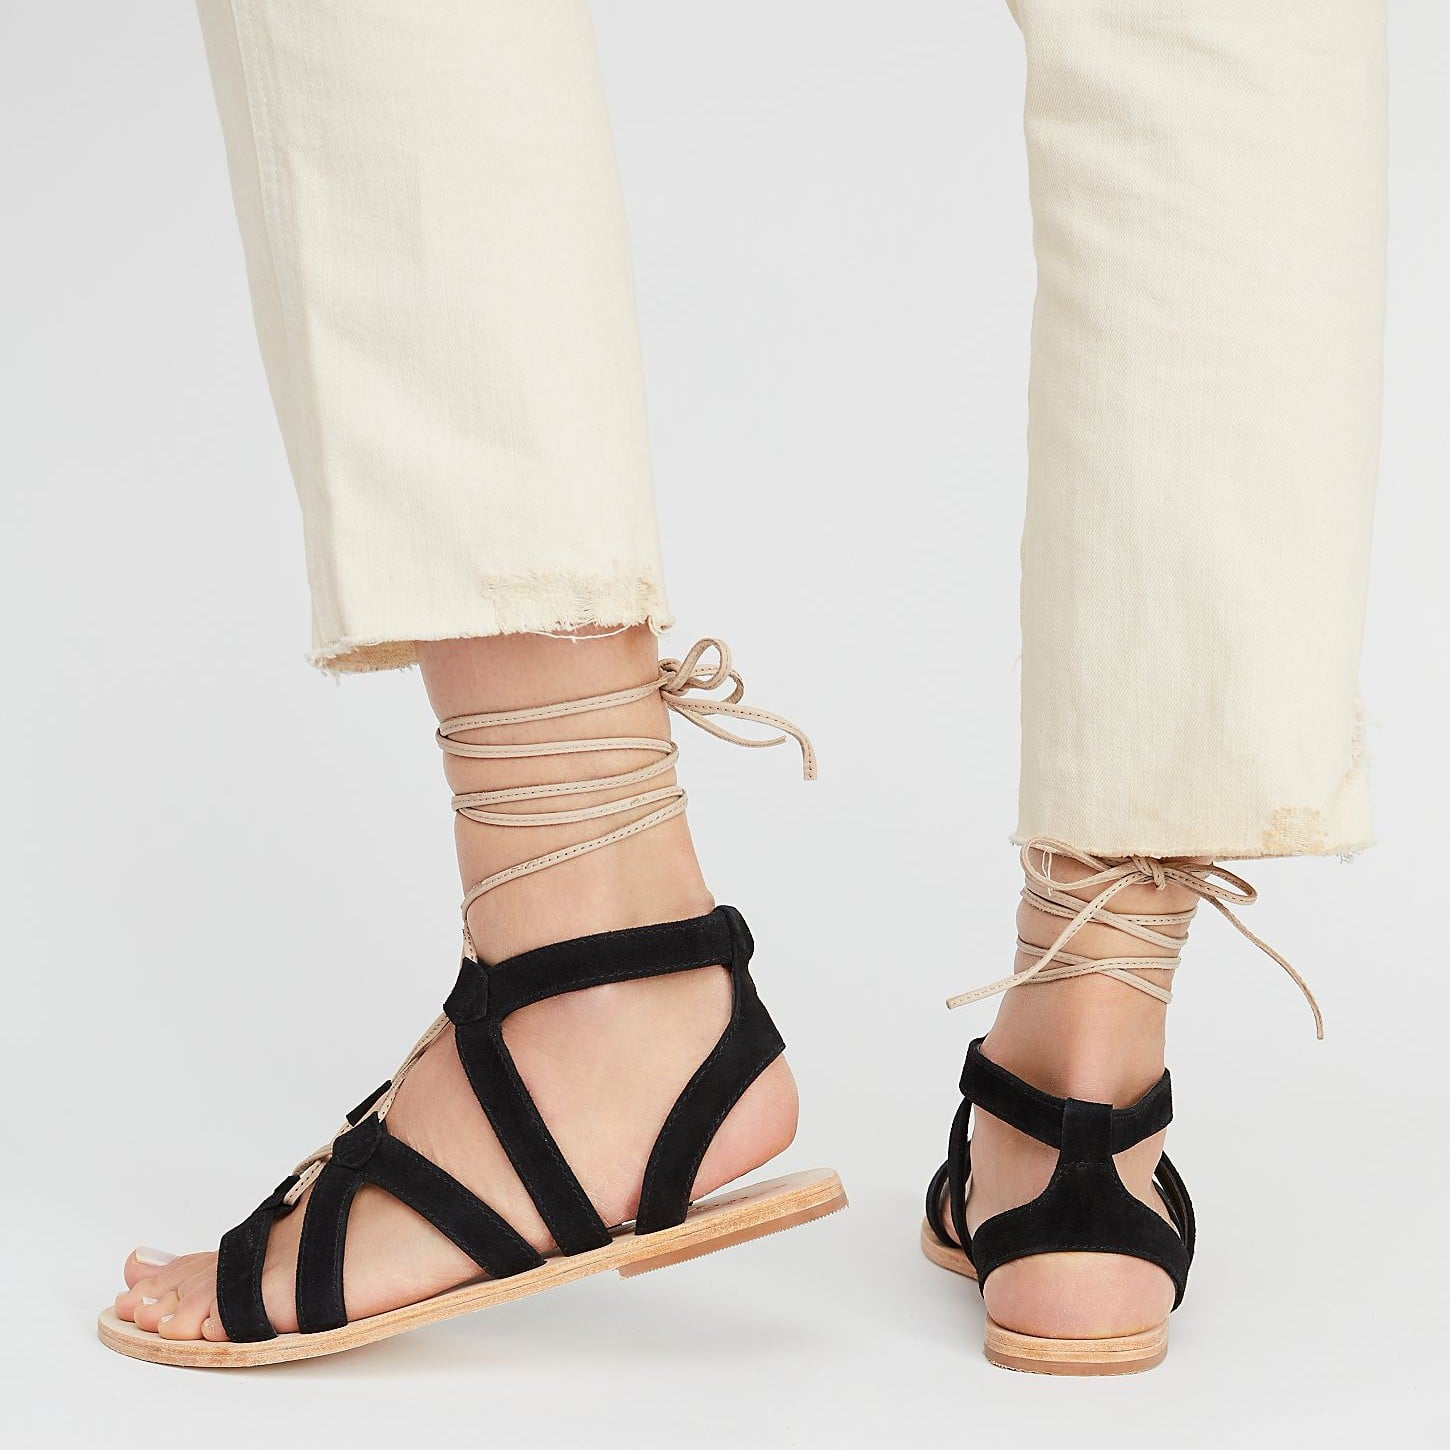 ebe4aaa8c7af Music Festival Shoes 2018